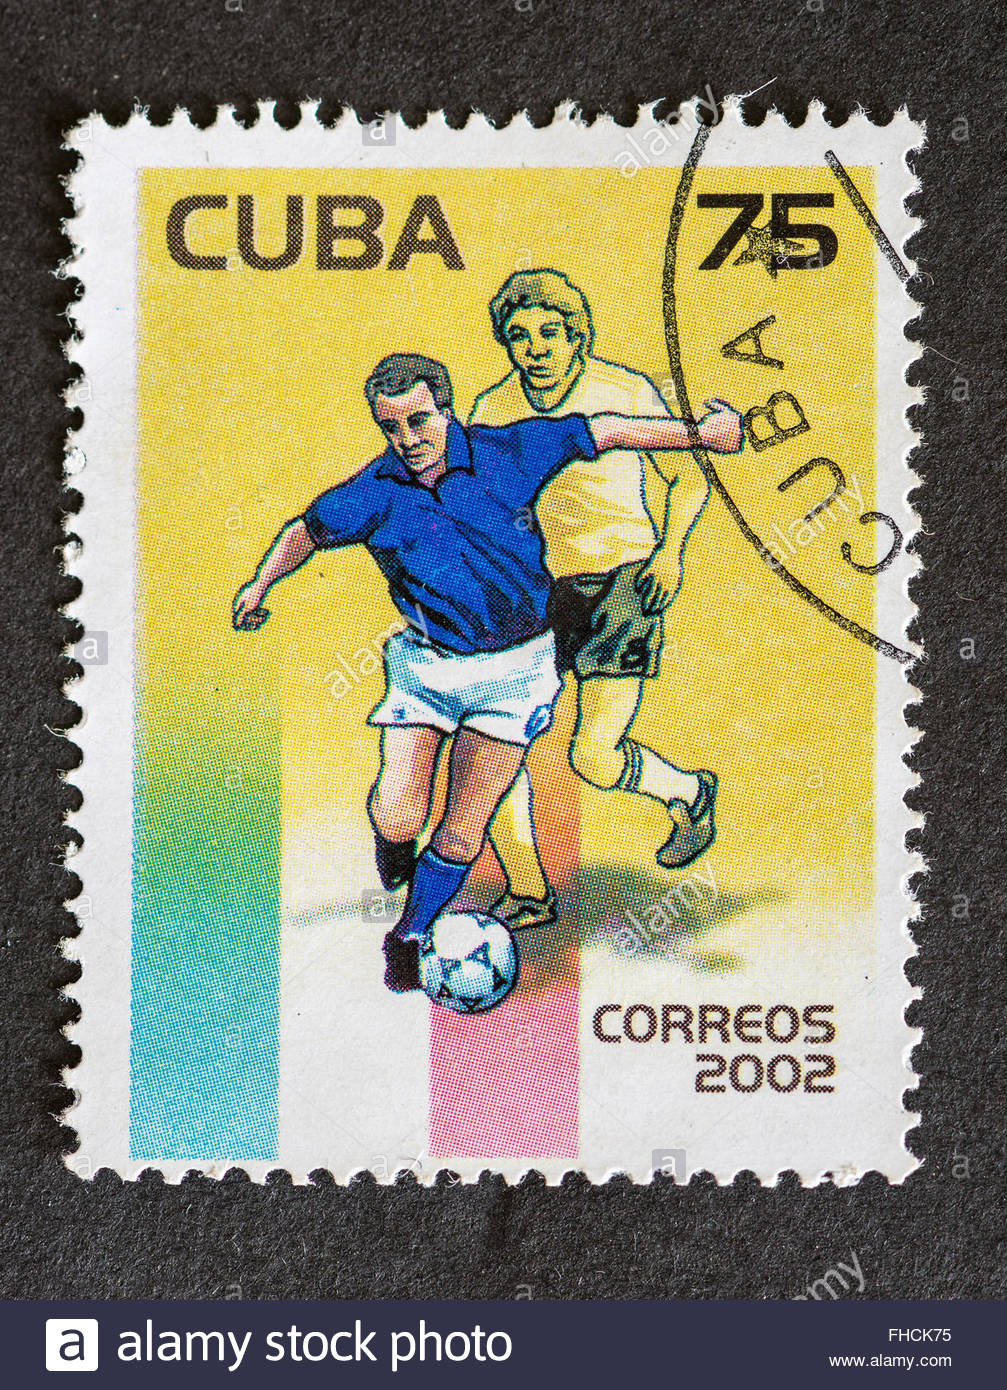 Postage stamp printed in Cuba used for mail, a series of stamps that were released in the year 2002 depicting soccer - Stock Image